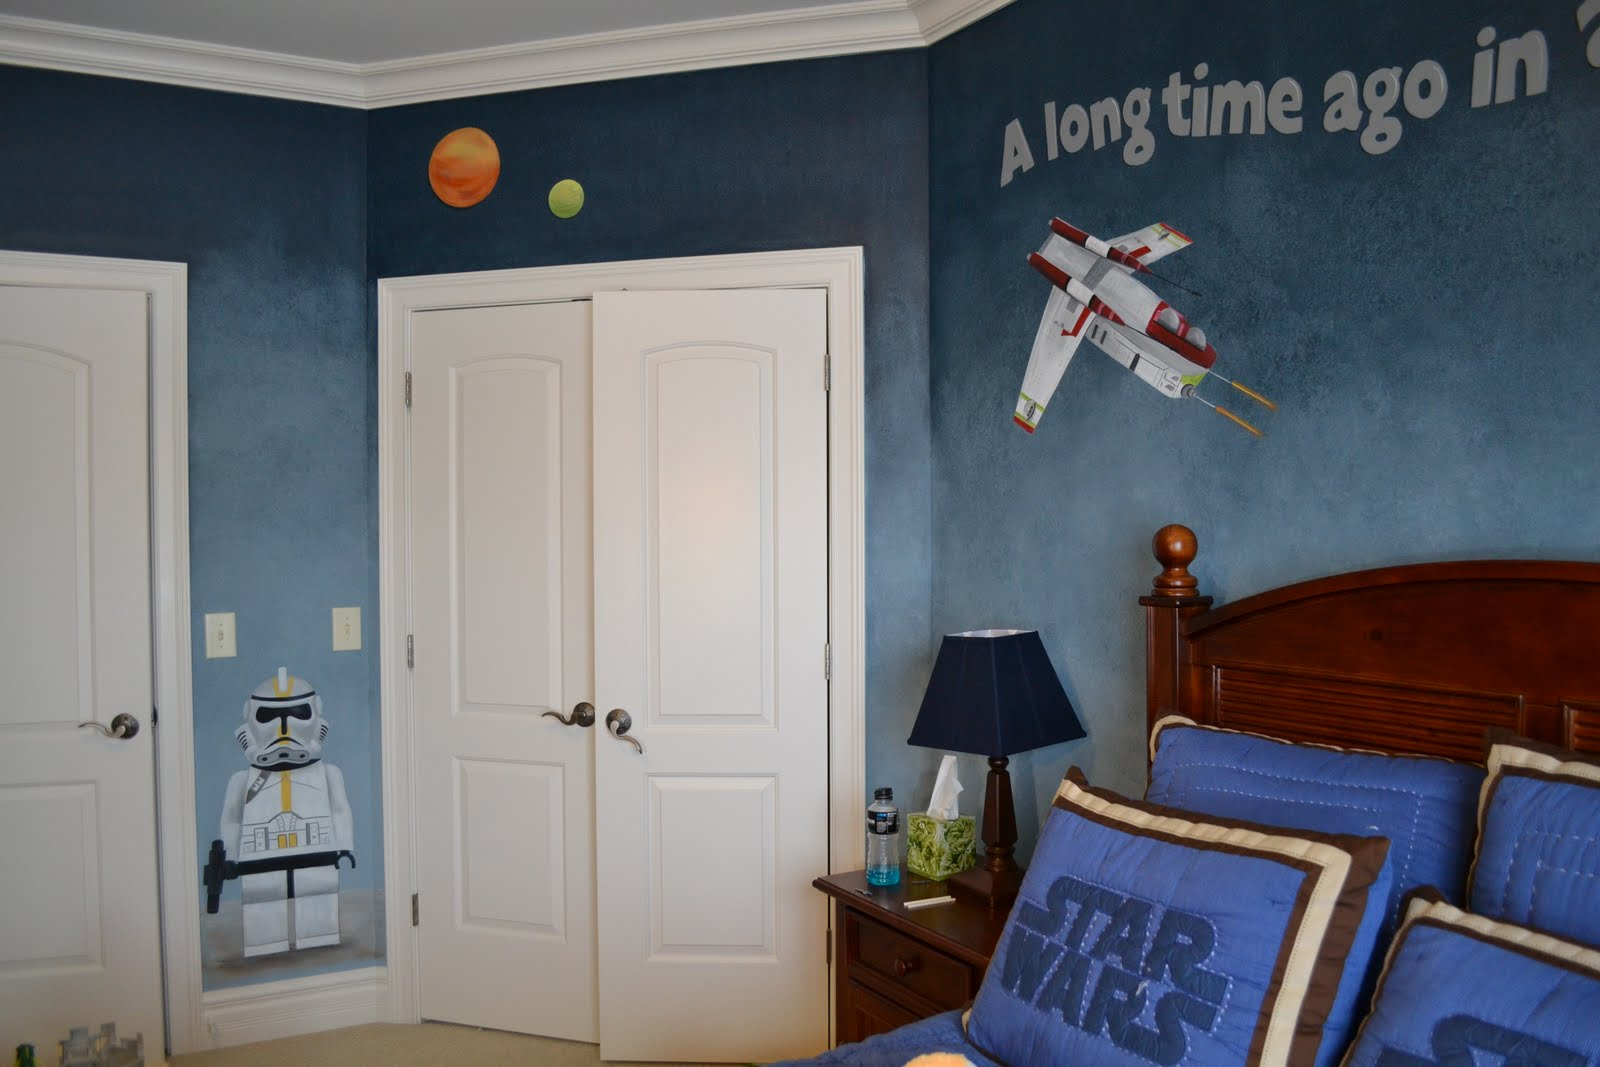 Kids bedroom designs ideas - Kids Bedroom Designs Ideas 42